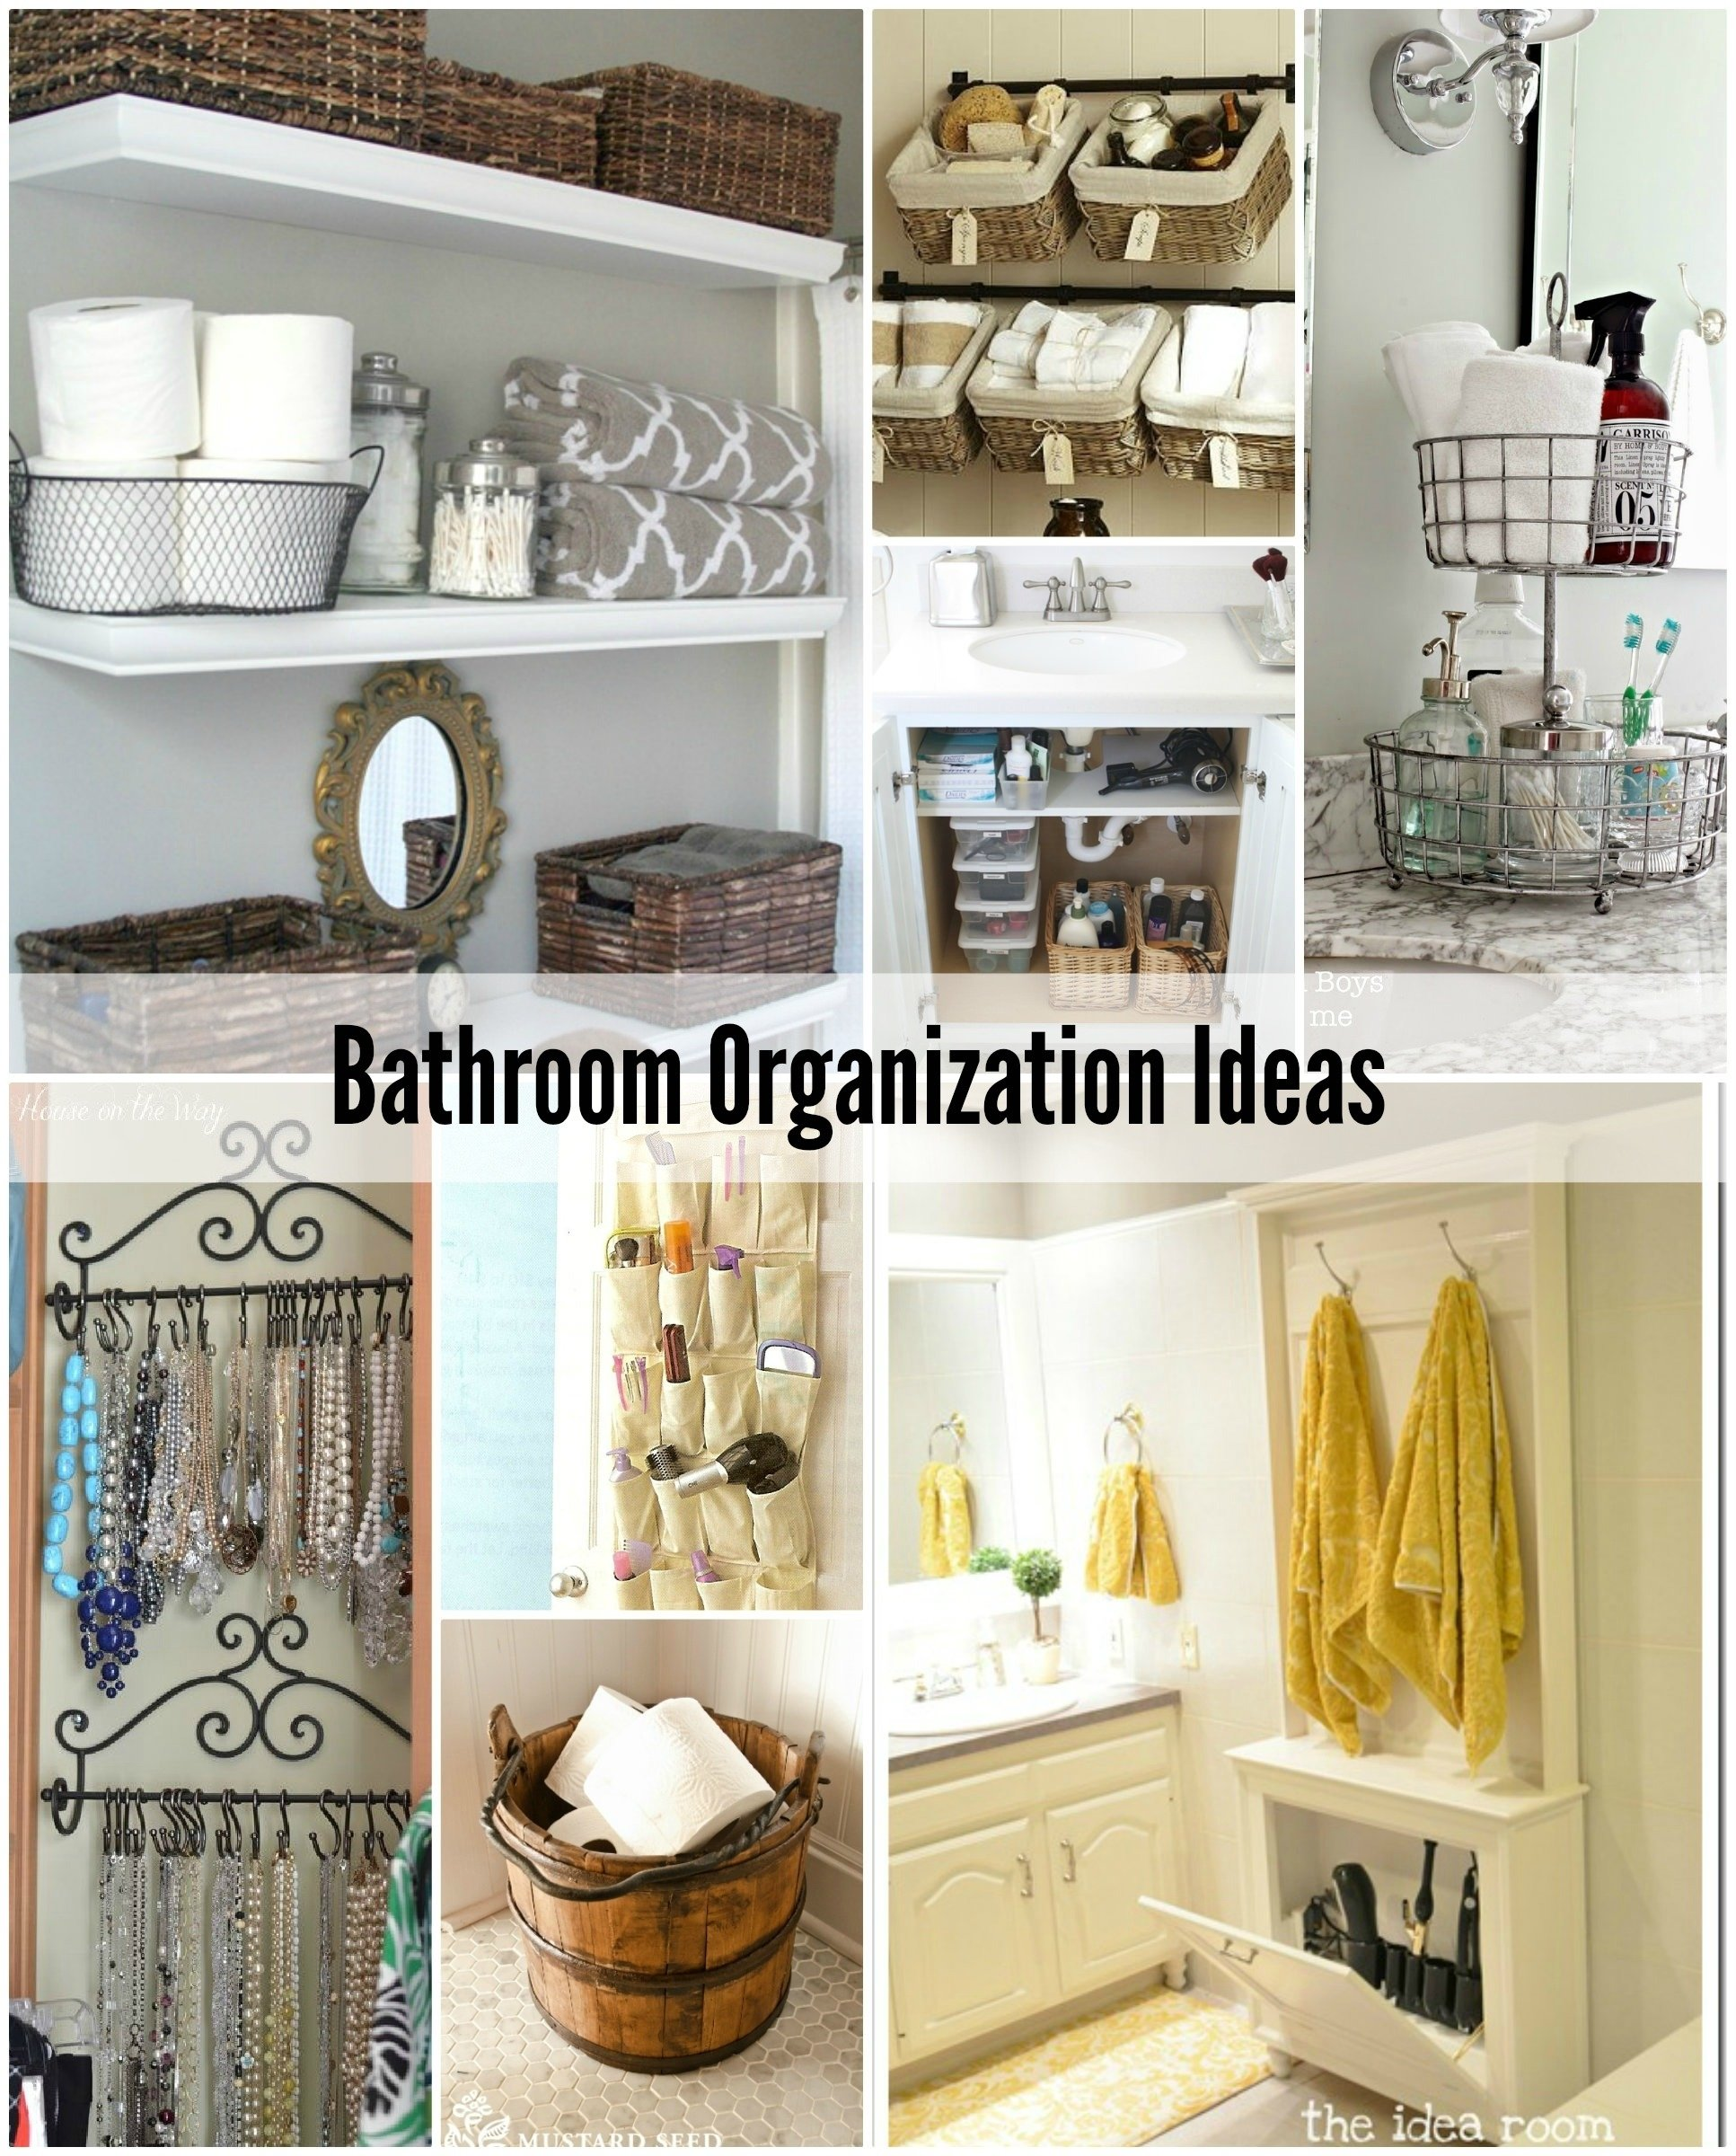 10 Most Popular Home Organization Tips And Ideas great tips to organizing bathroom ideas awful design stock photos hd 2020